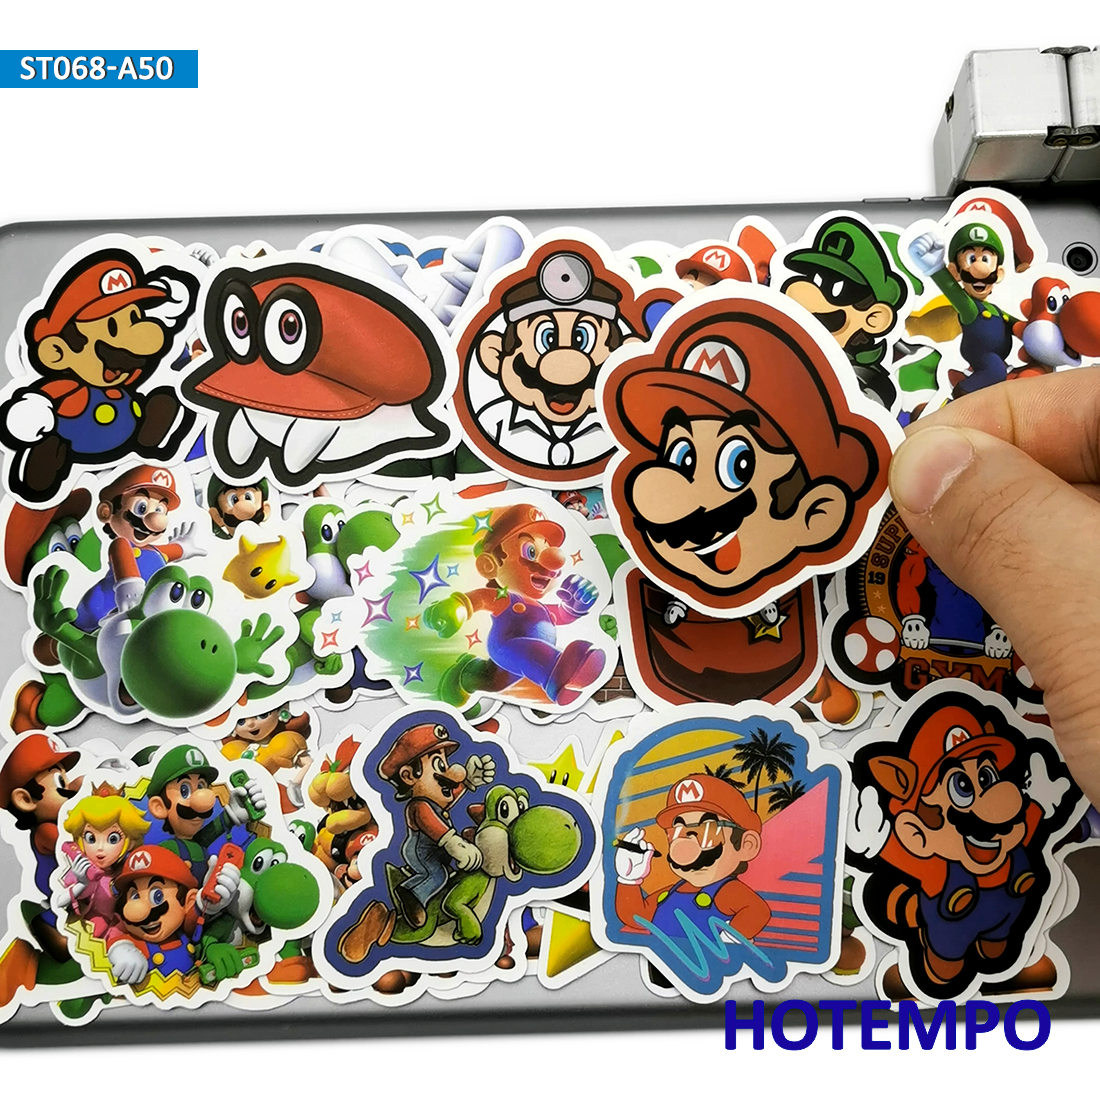 50pcs Cartoon Super Hero Mario Luigi Games Stickers Toys For Mobile Phone Laptop Luggage Suitcase Skateboard Anime Decal Sticker